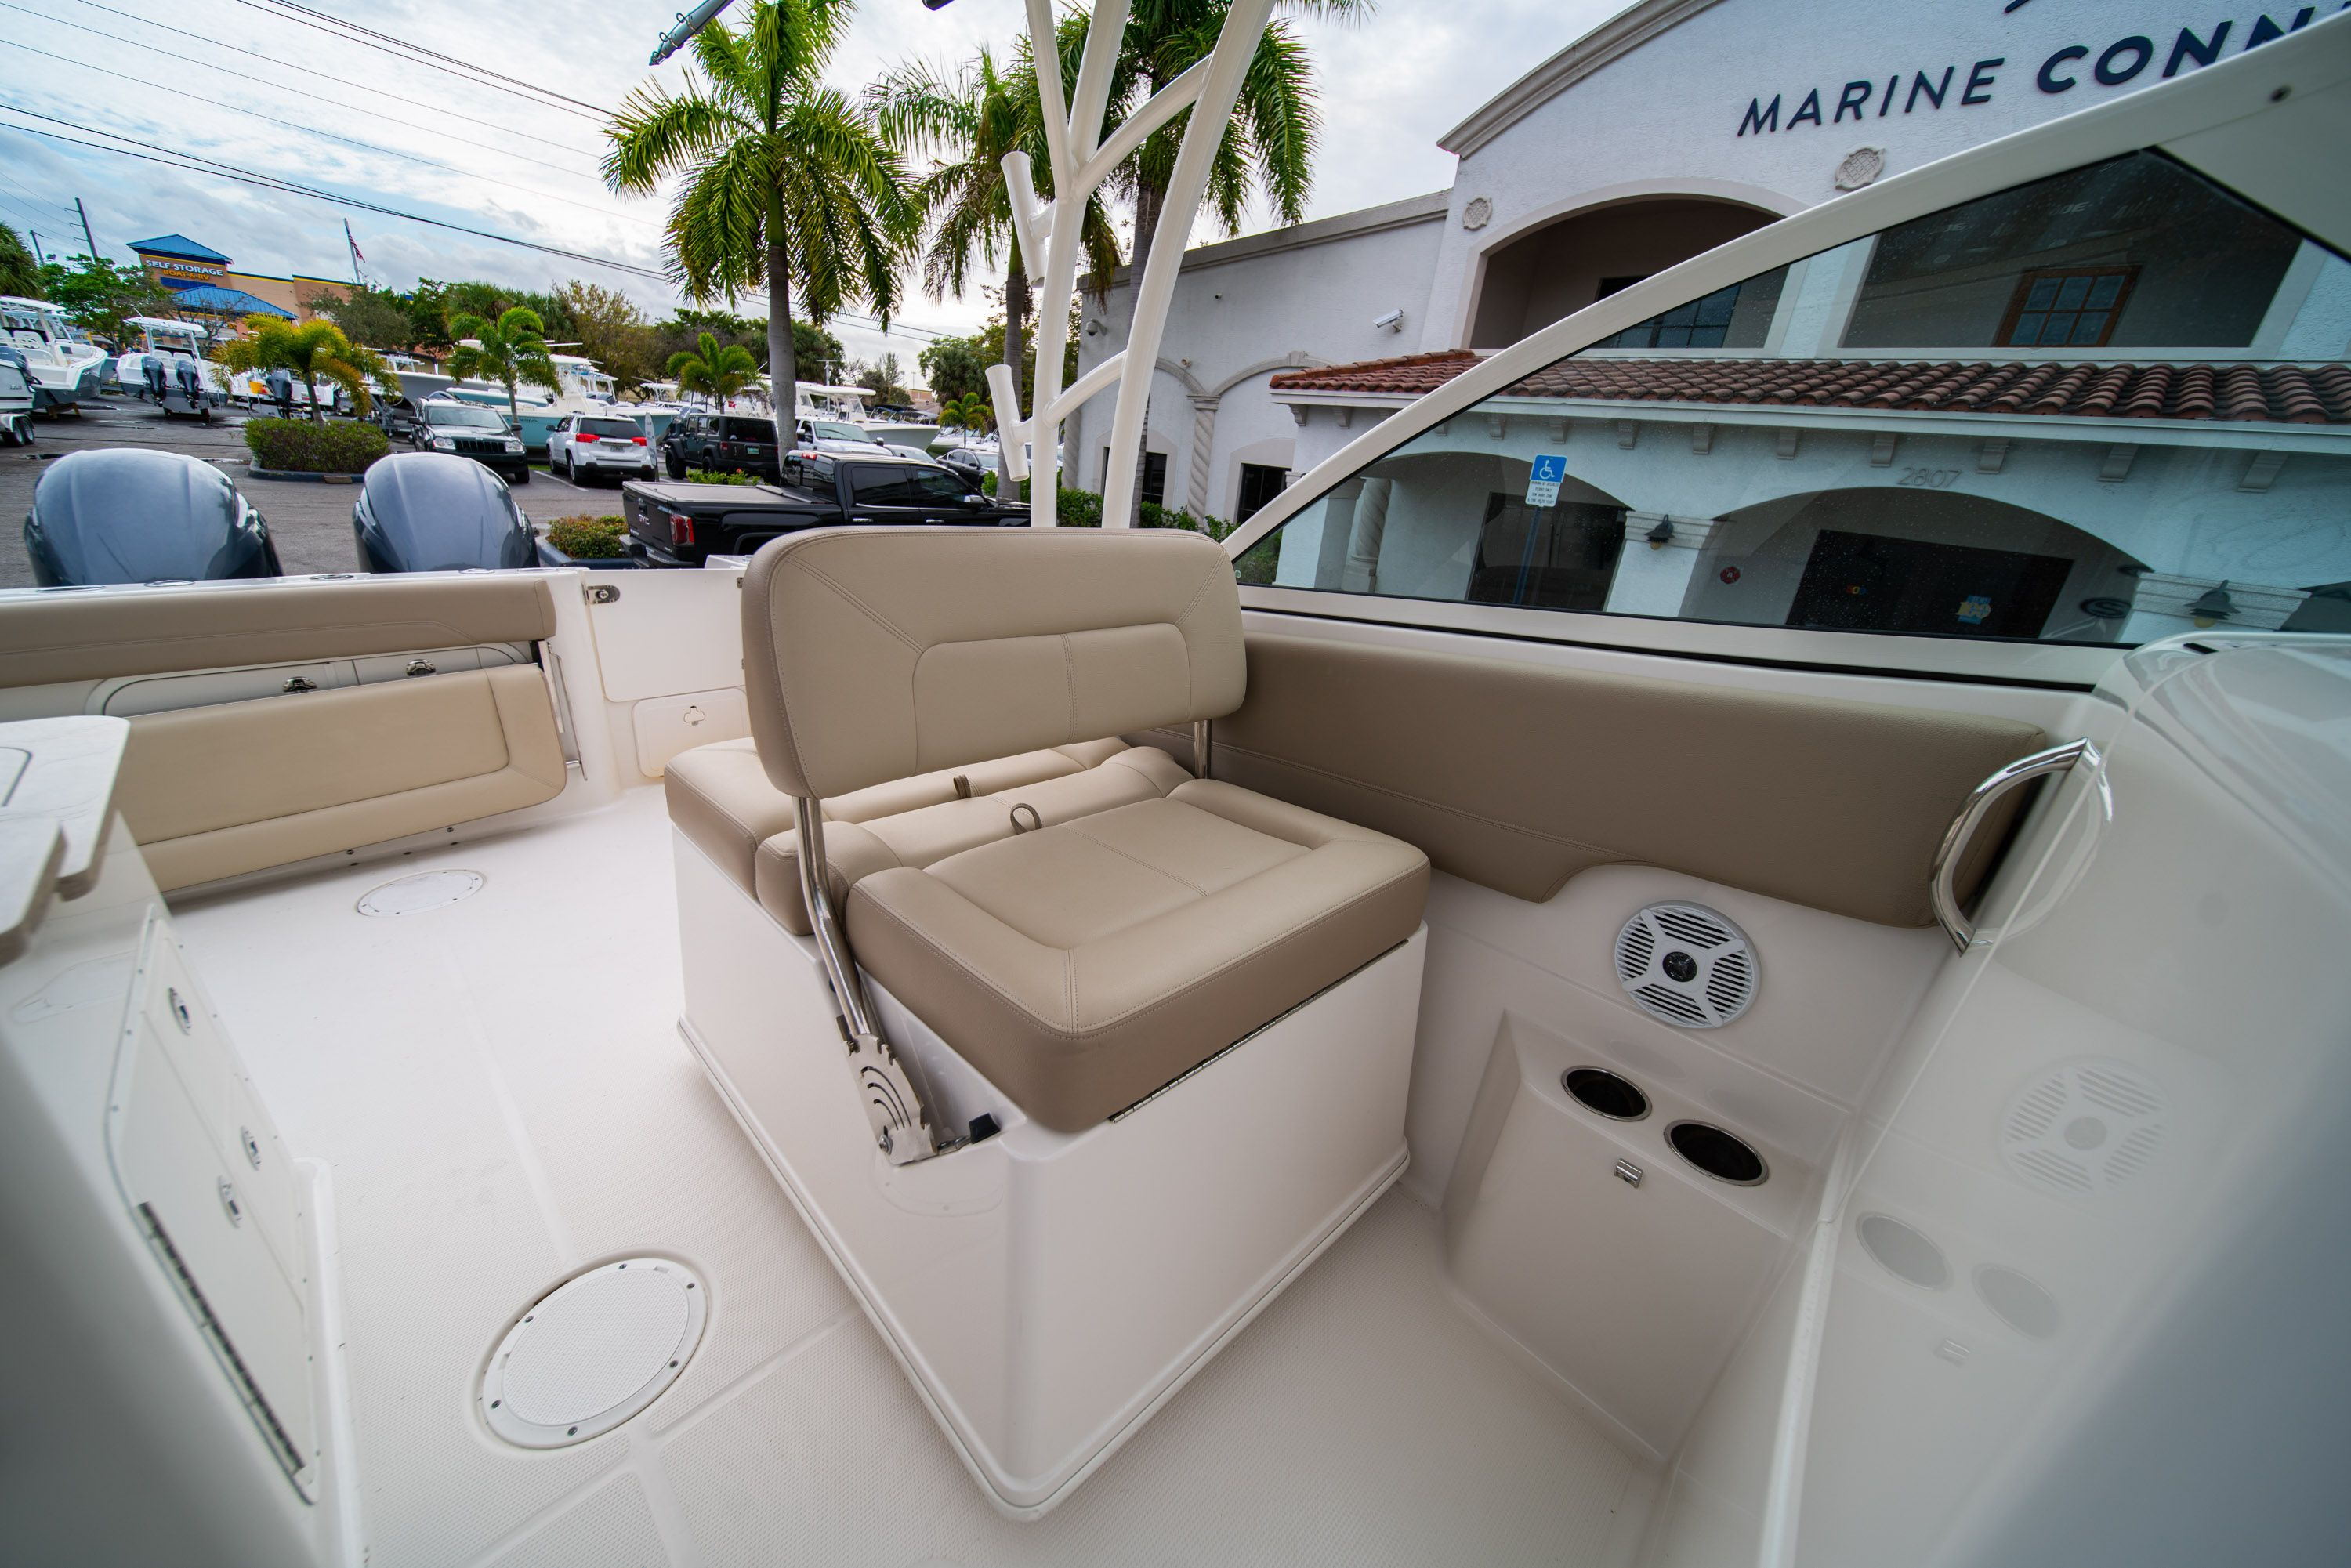 Thumbnail 51 for Used 2017 Sailfish 275 Dual Console boat for sale in West Palm Beach, FL